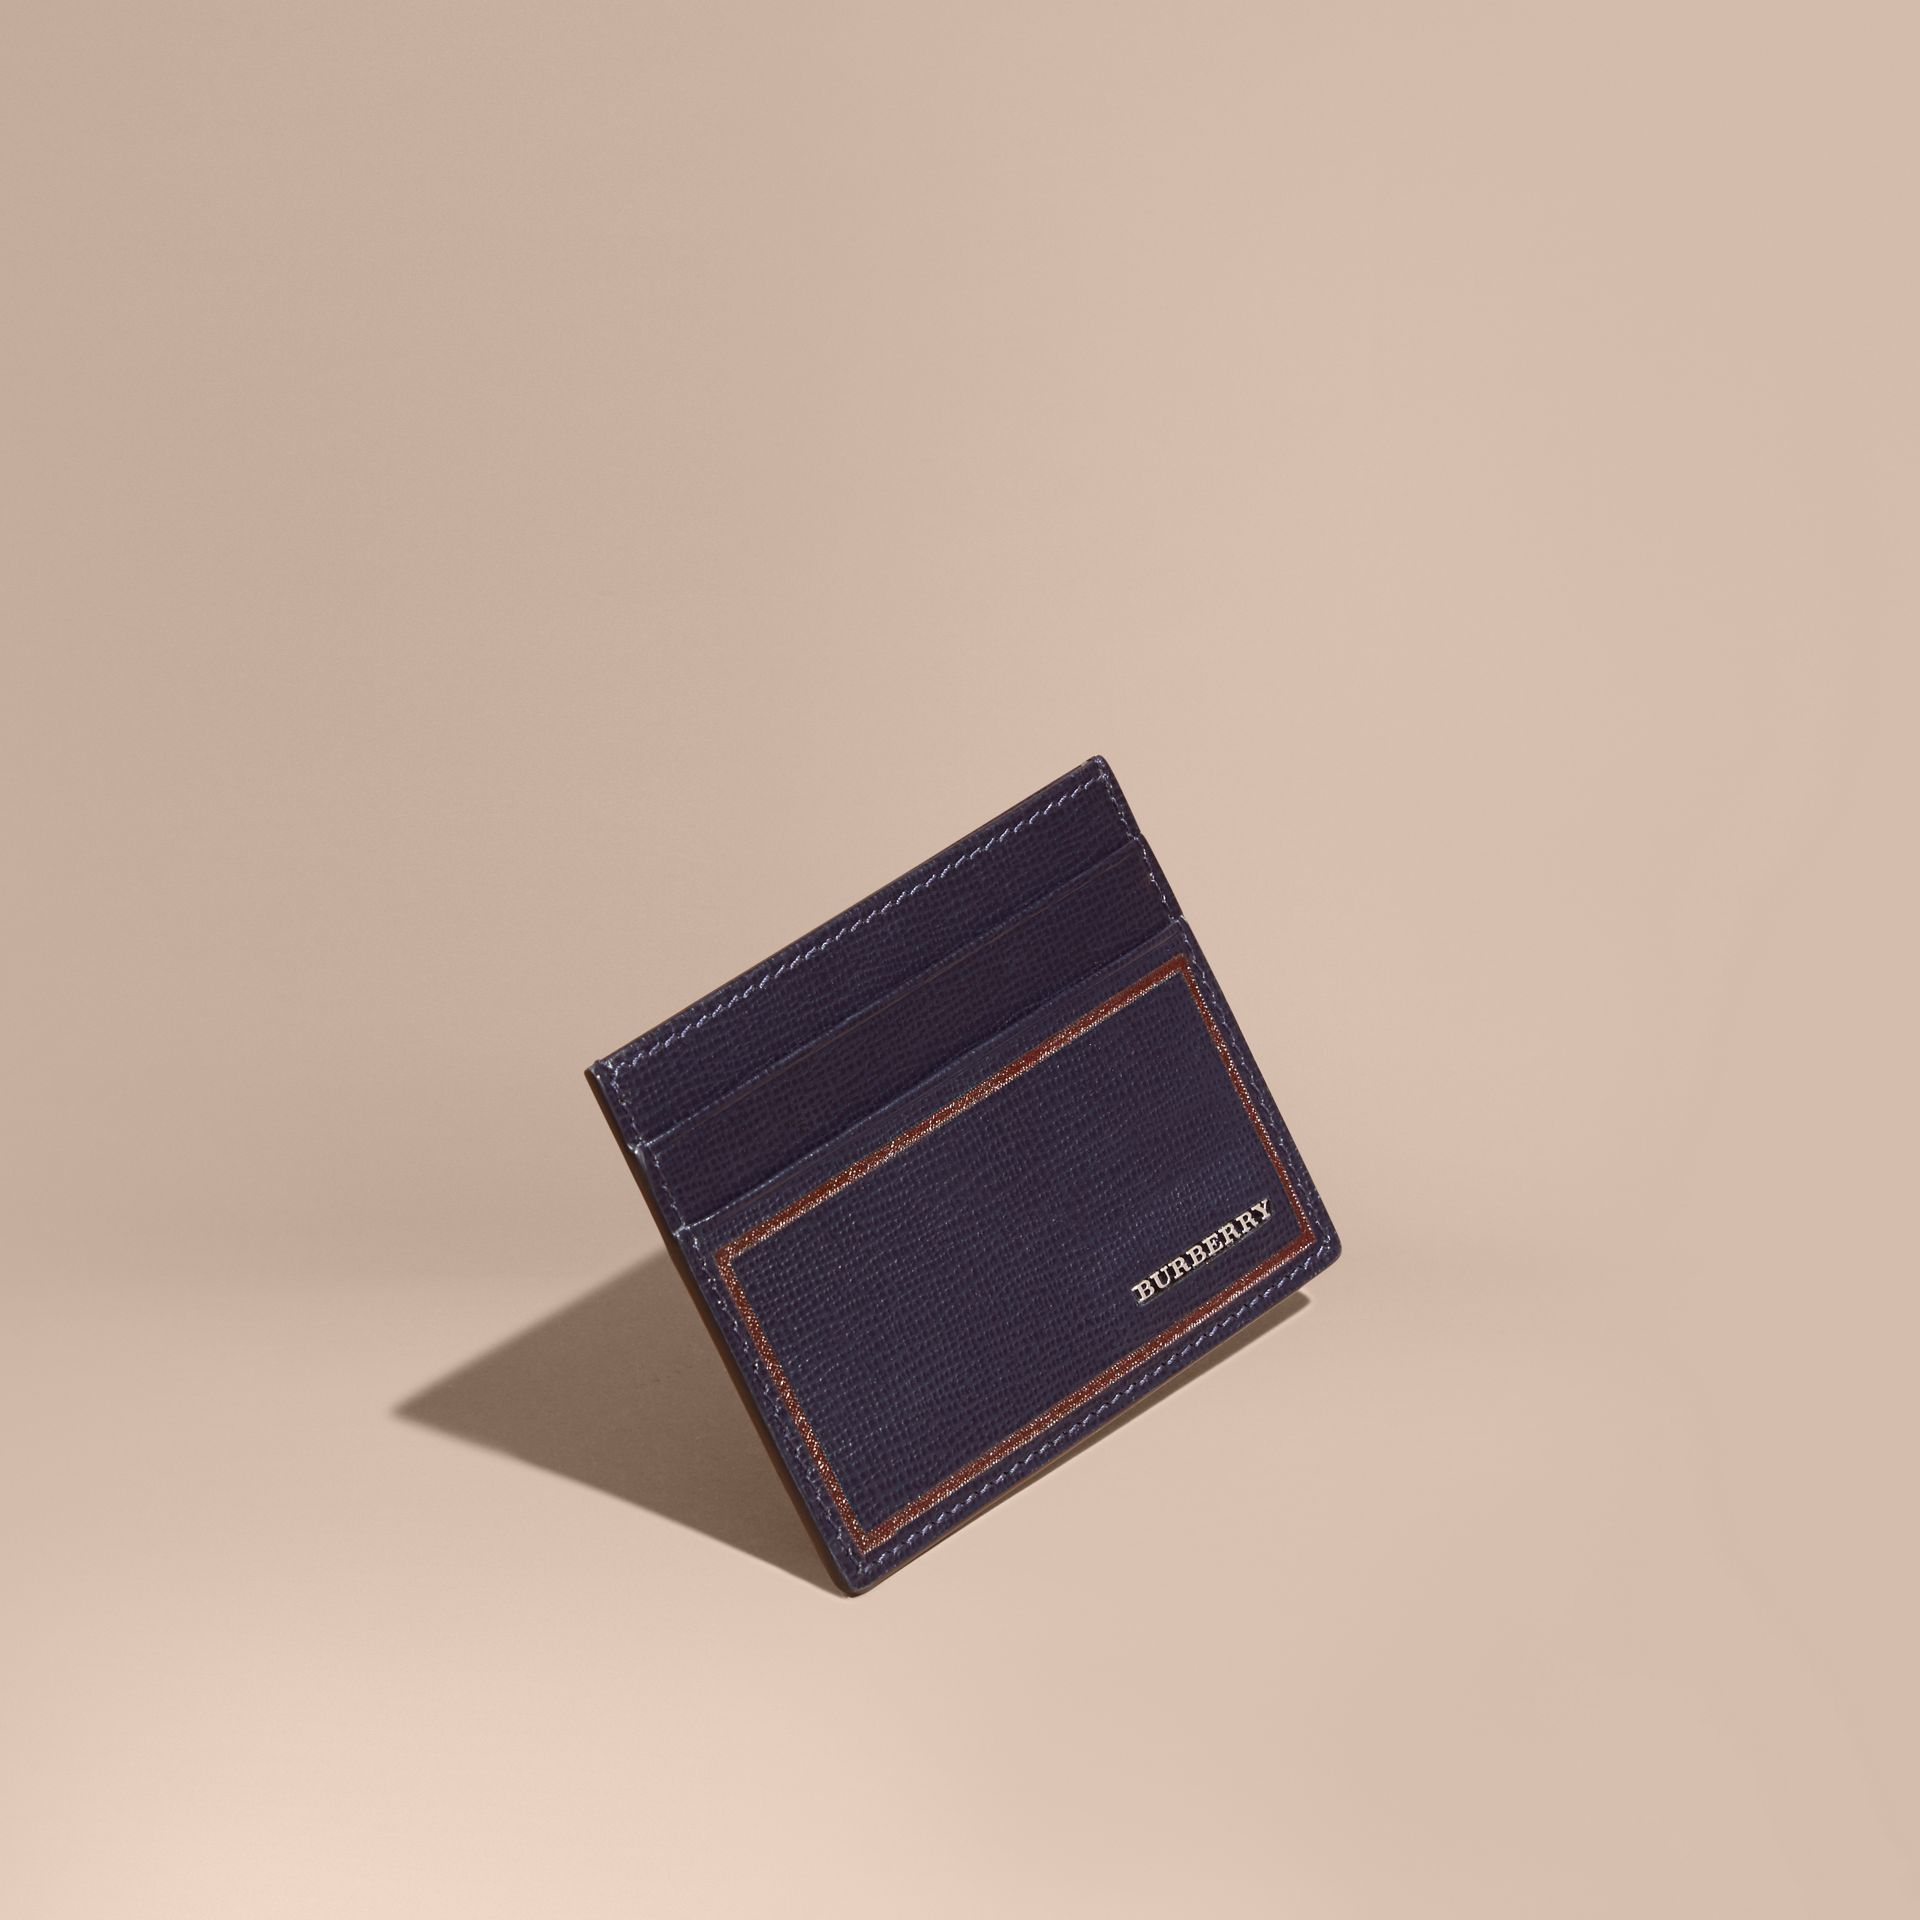 Border Detail London Leather Card Case Dark Navy - gallery image 1